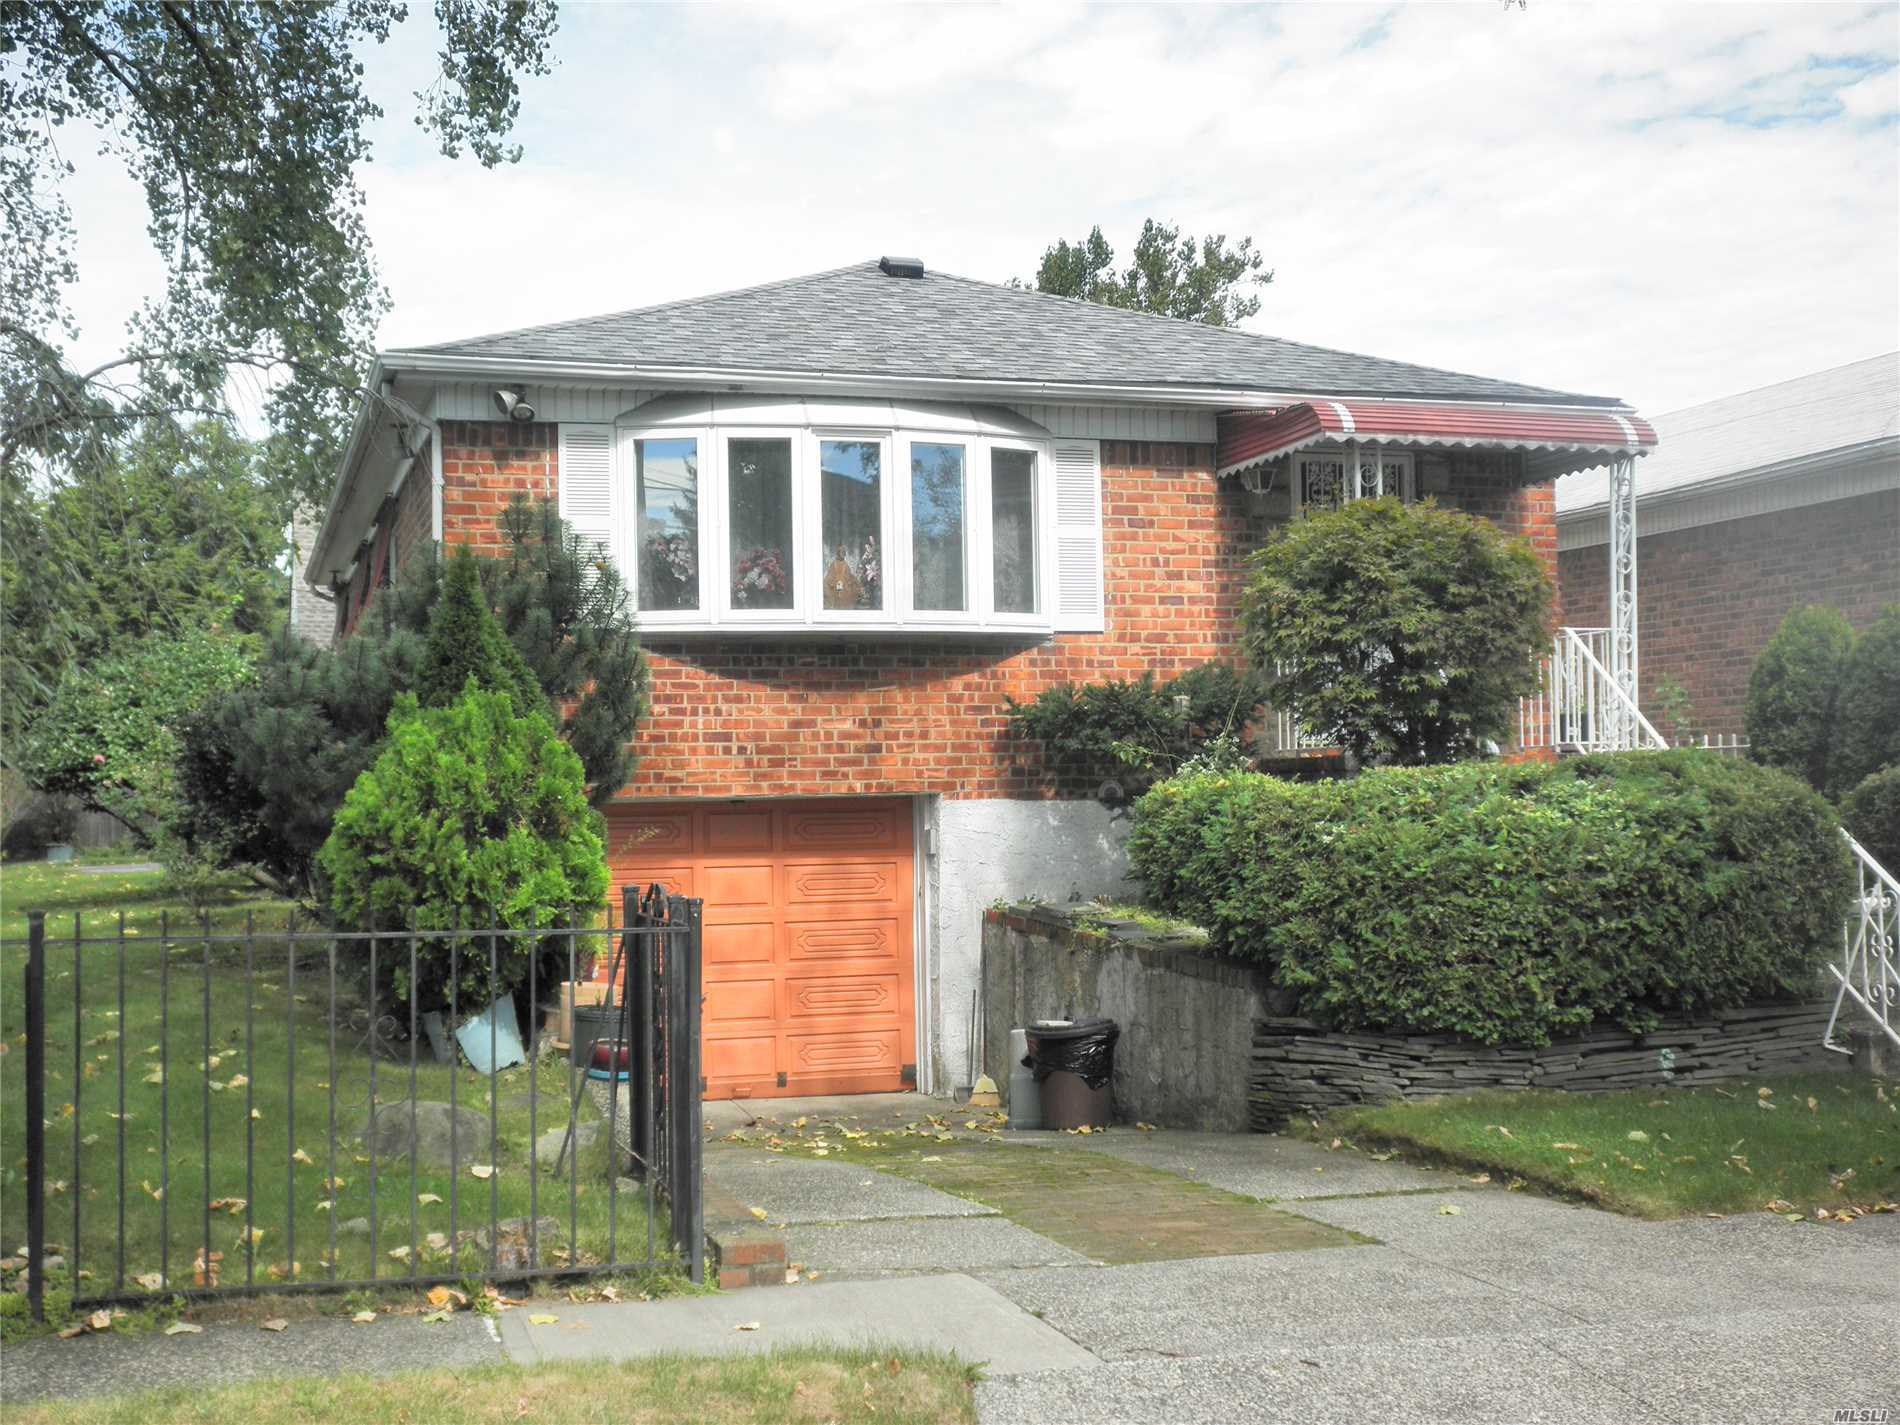 Lovely Southern Exposure Sunny Detached Brick Raised Ranch House With 3 Bedrooms, 2 Baths, Formal Dining Room, Eat In Kitchen, Nice Finished Basement. 26X47 Building Sized. 46X100 Corner Property. Top School District With Ps184, Is25& Bayside High School. Prime North Bayside Location. Very Quiet Block And Convenient Transportation.Do Not Miss This Extraordinary Opportunity!